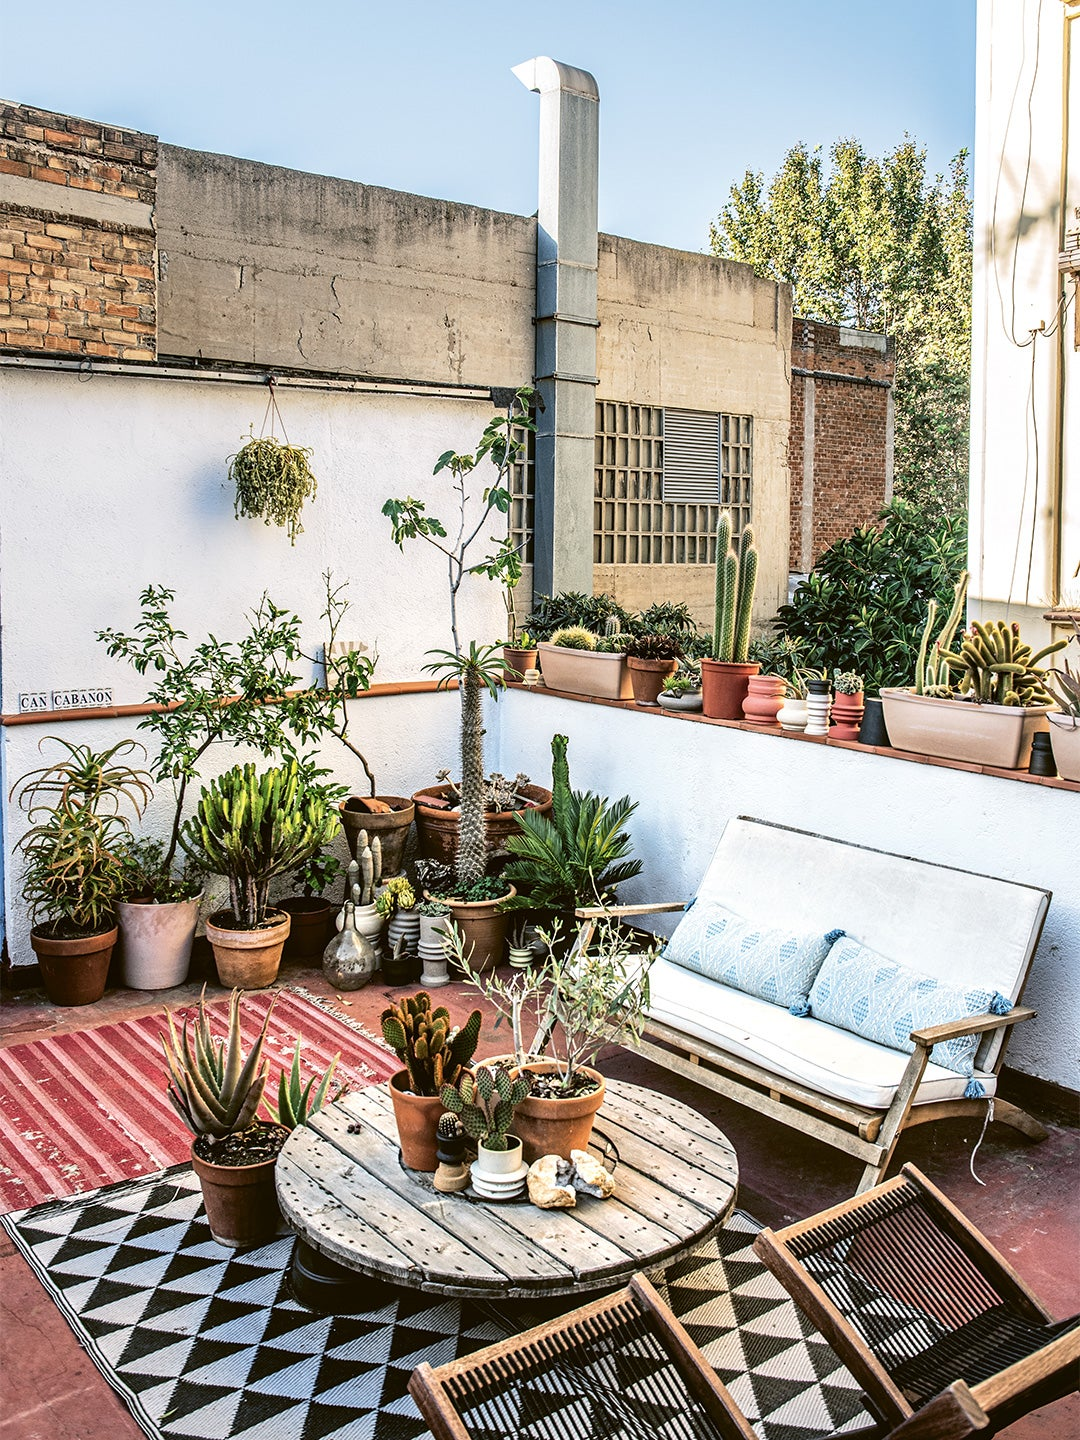 sofa and table outside on tiled patio